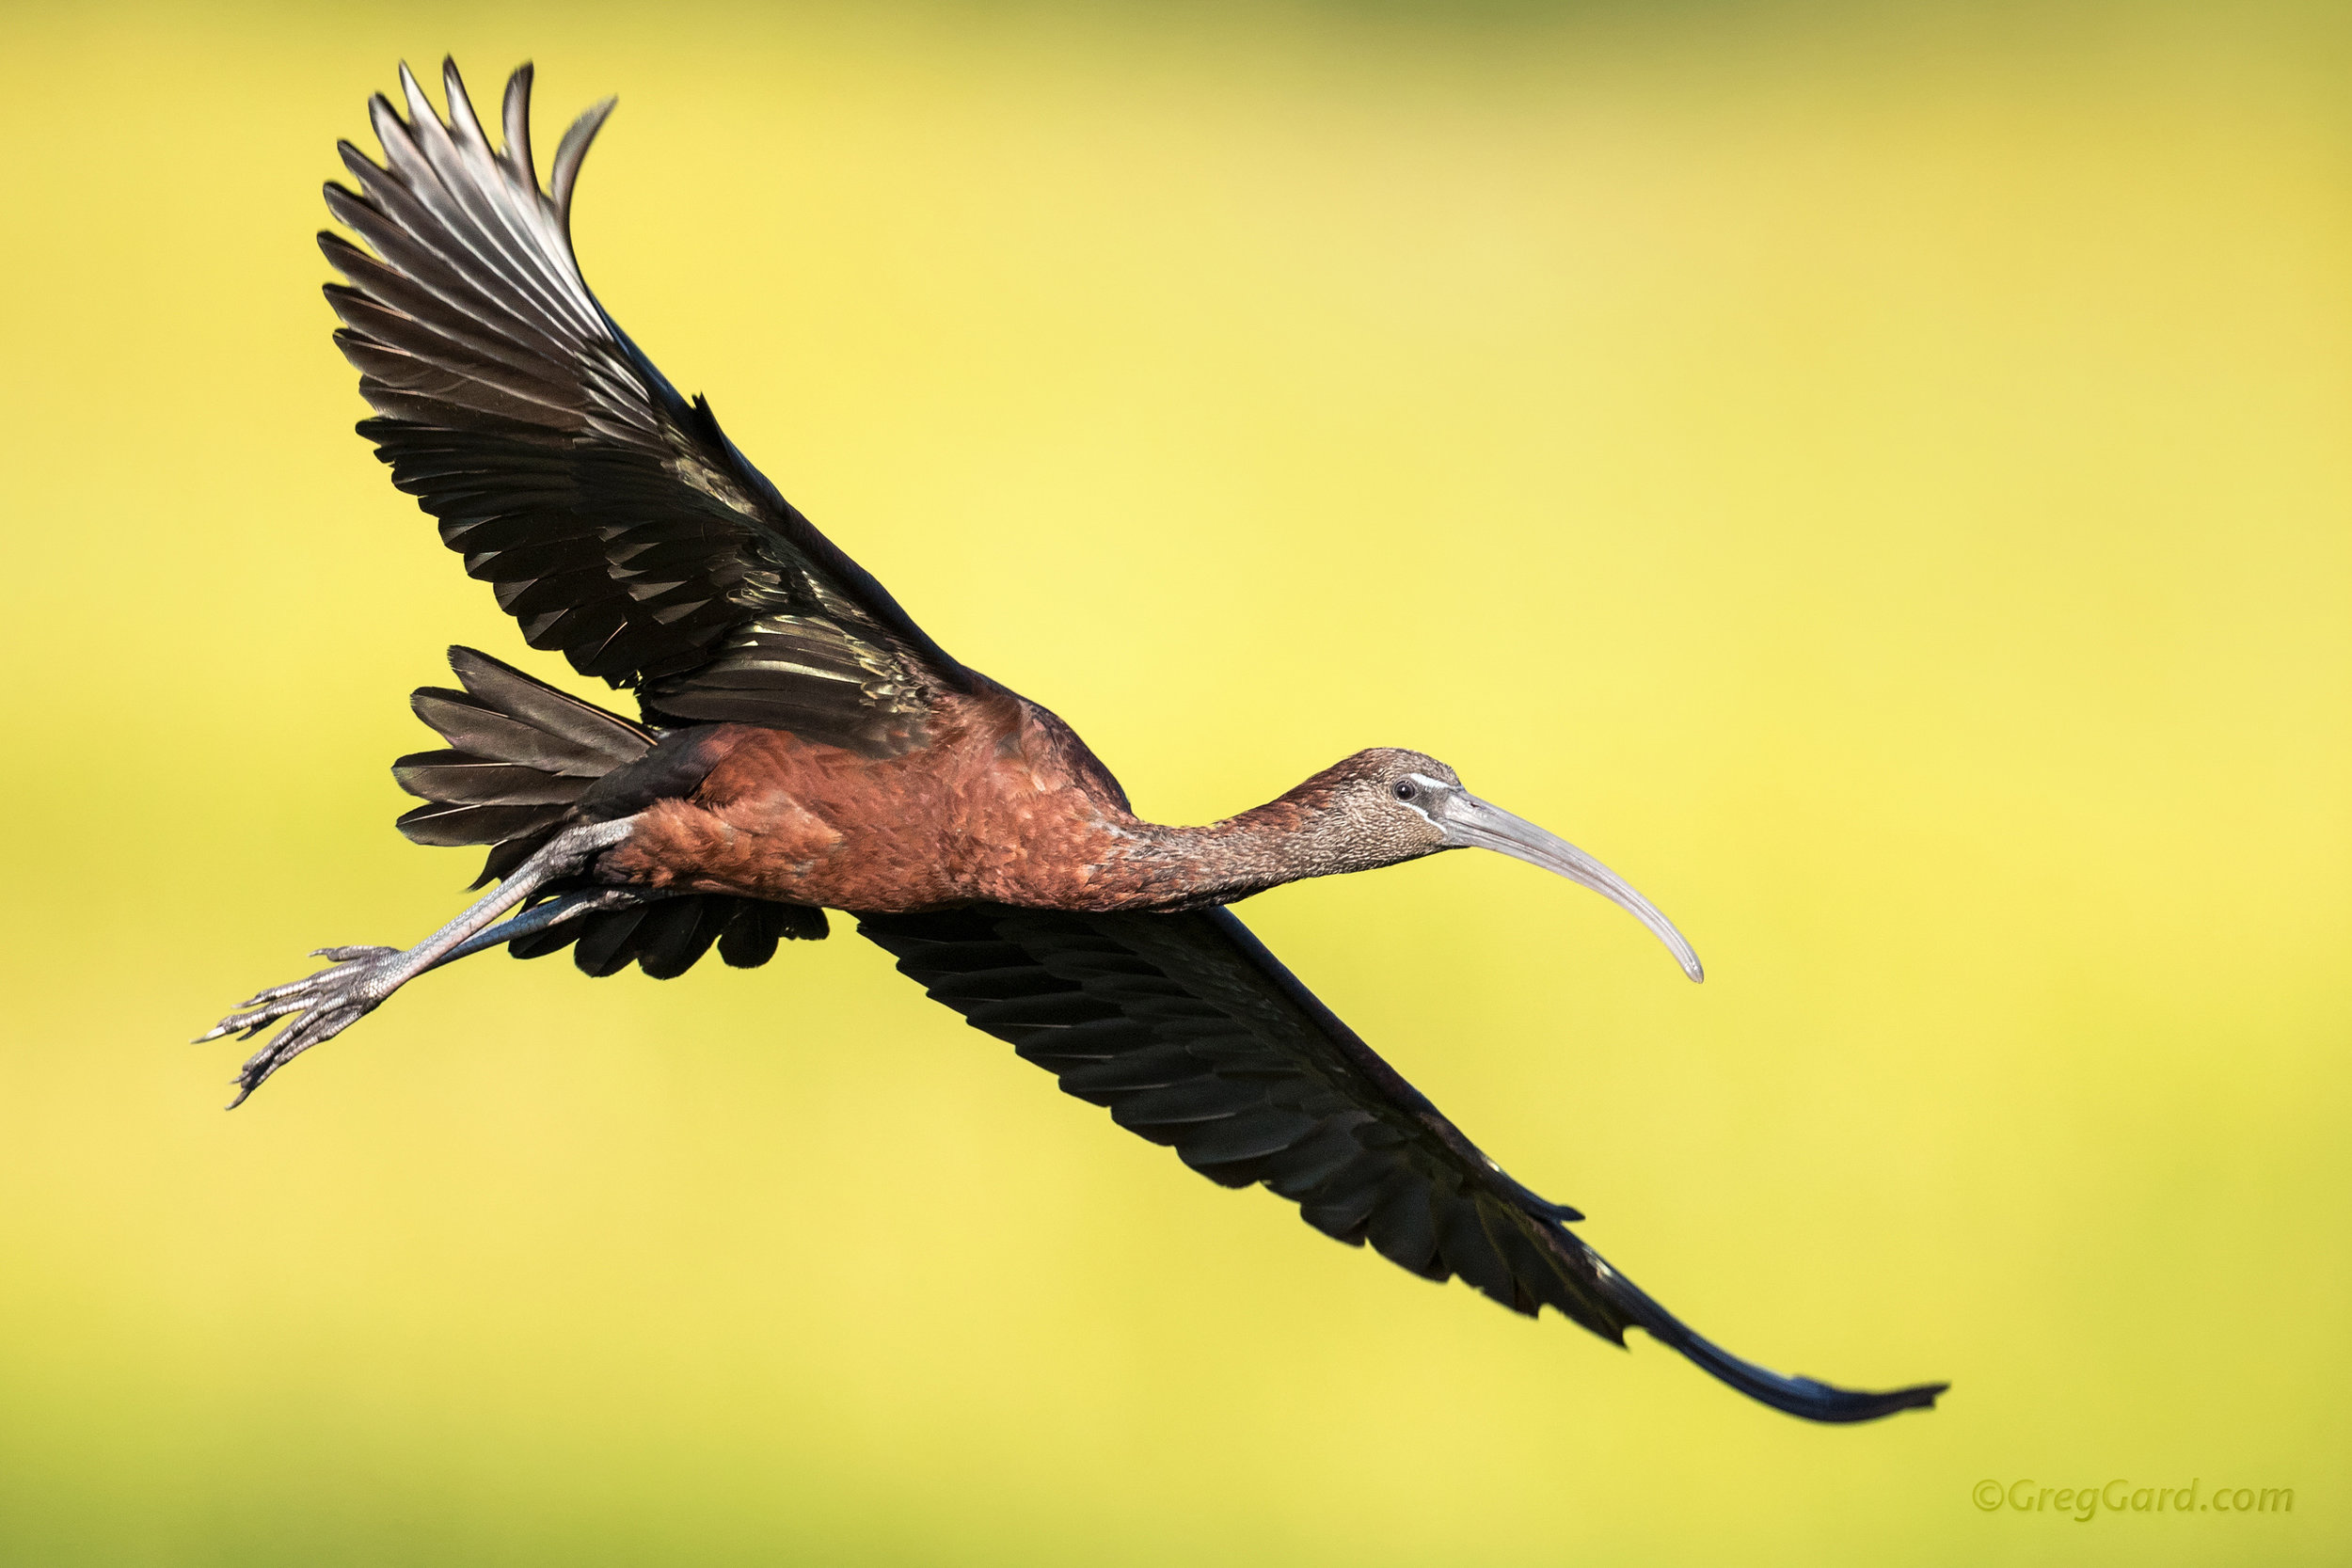 Adult Glossy Ibis flying over the green background, New Jersey